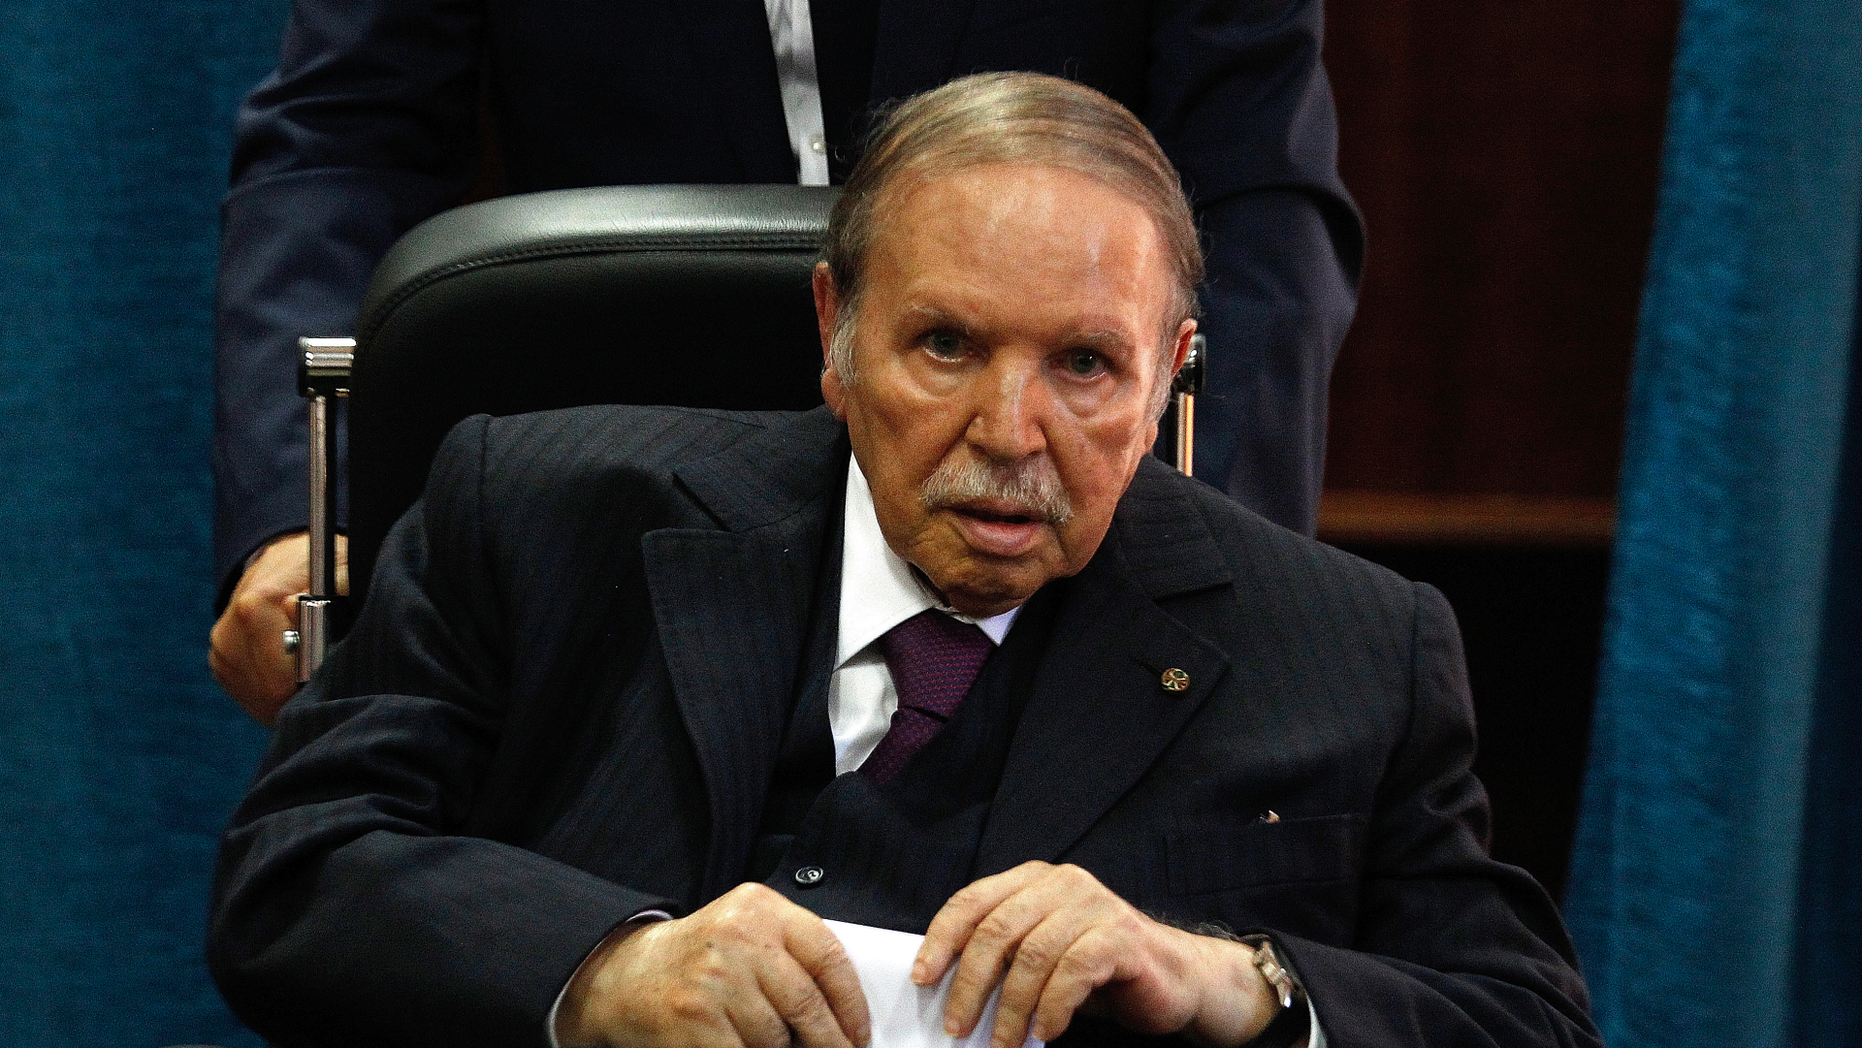 President Bouteflika of Algeria abandons re-election bid